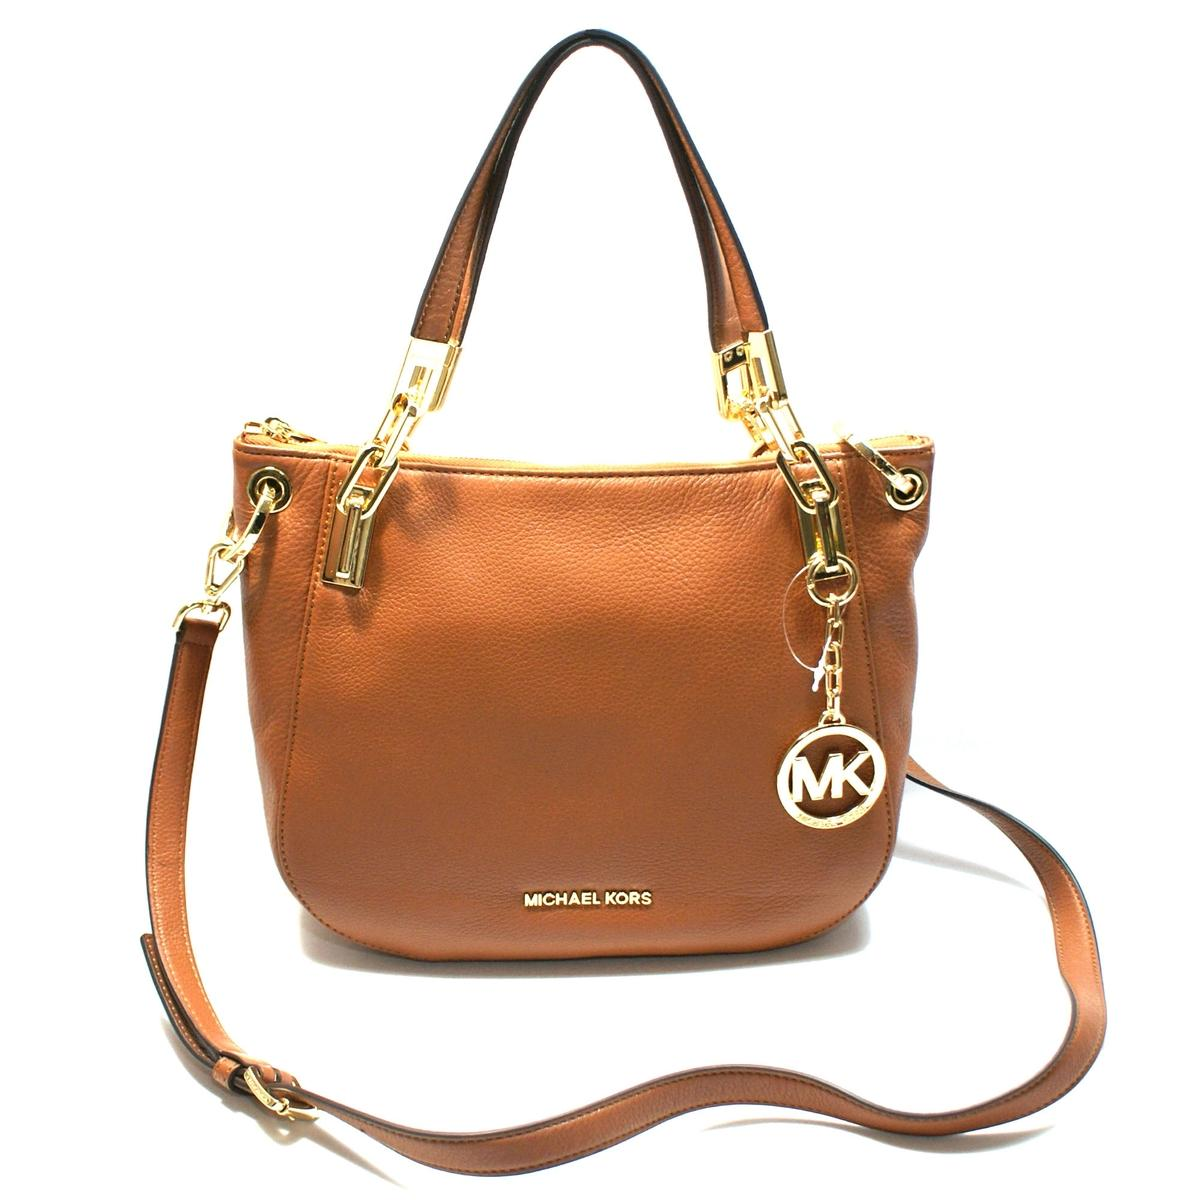 michael kors genuine leather medium shoulder